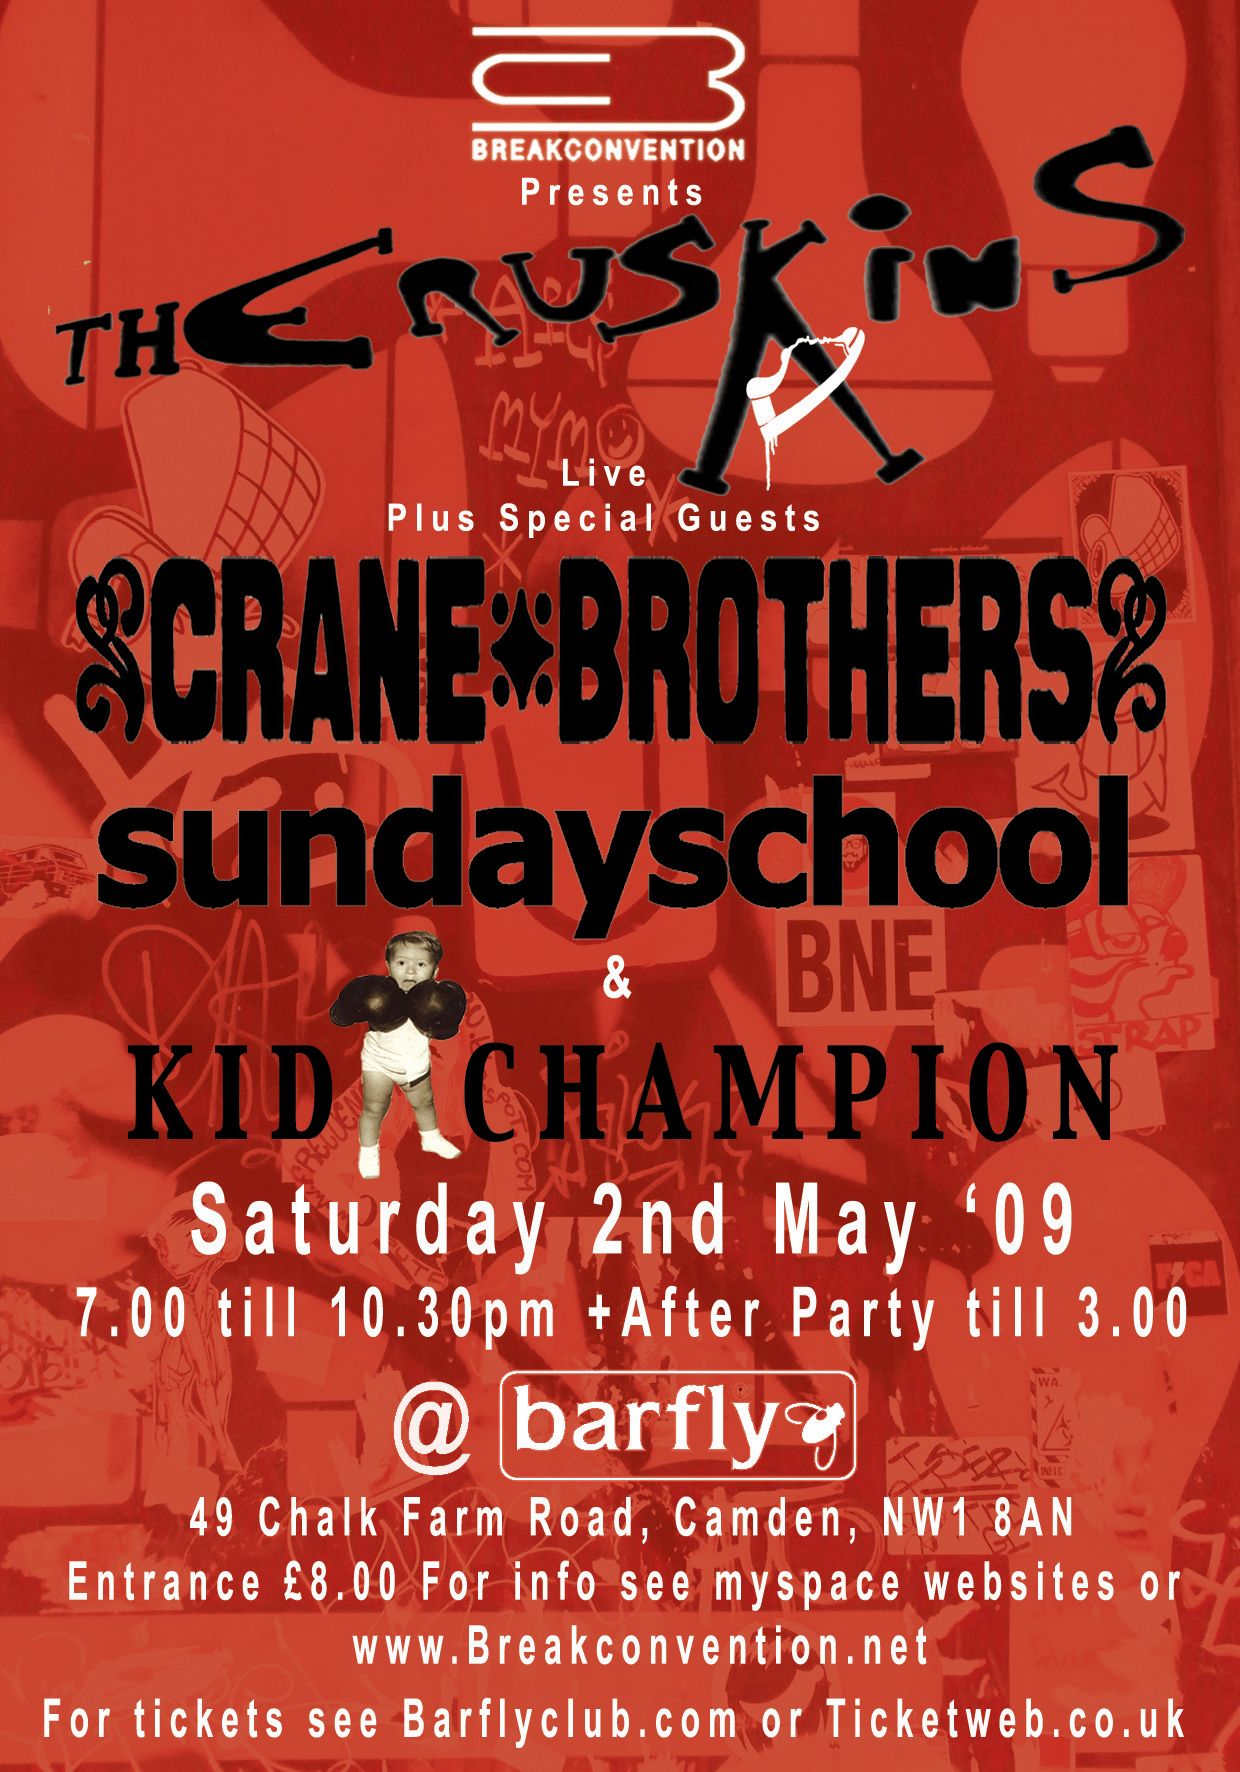 Barfly Poster 02.05.09.1